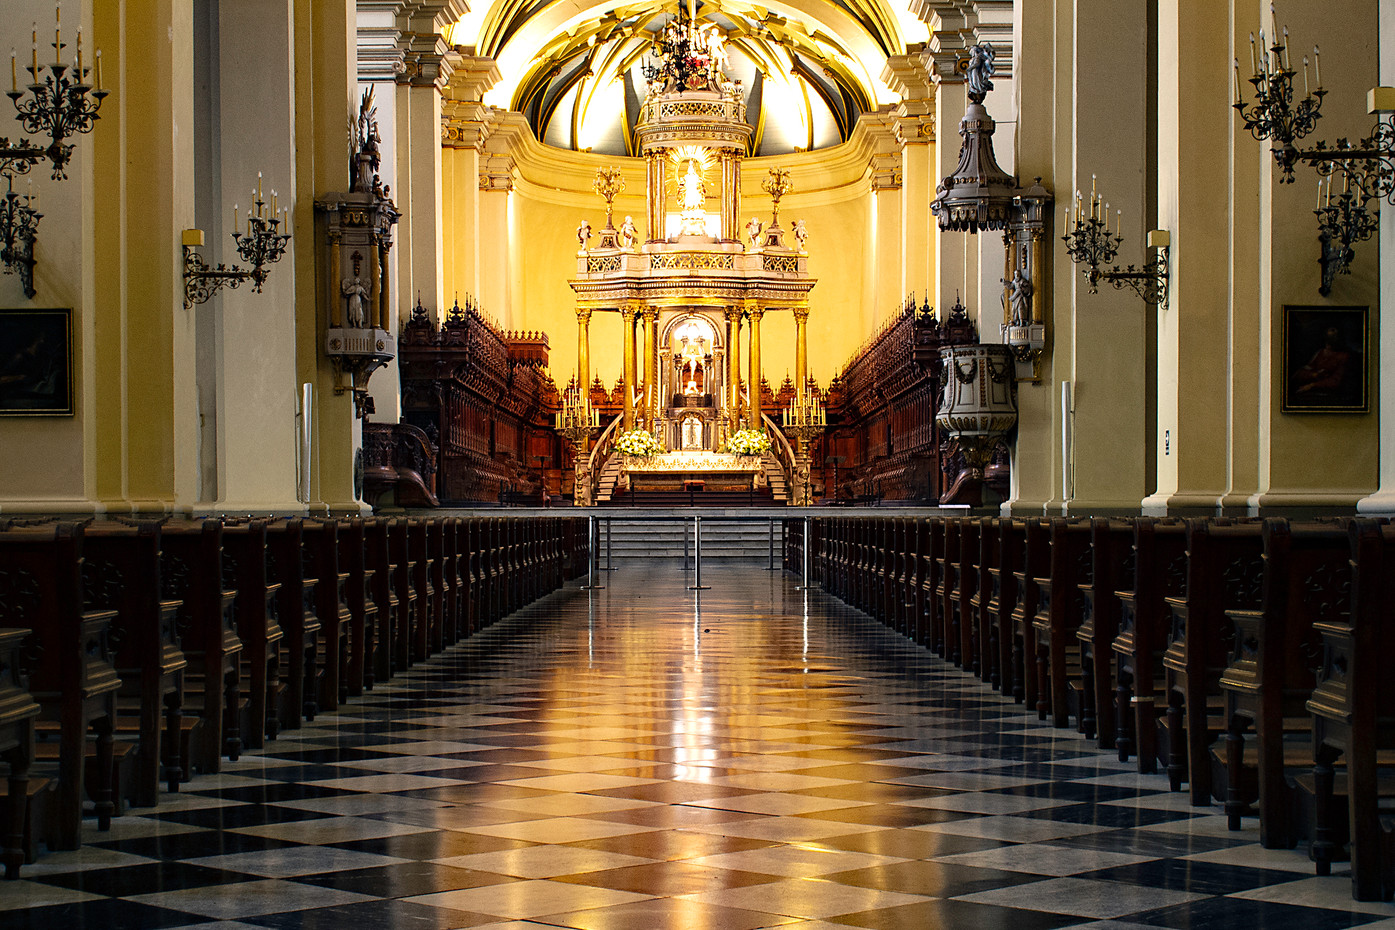 The alter of the Cathedral of Lima, Peru